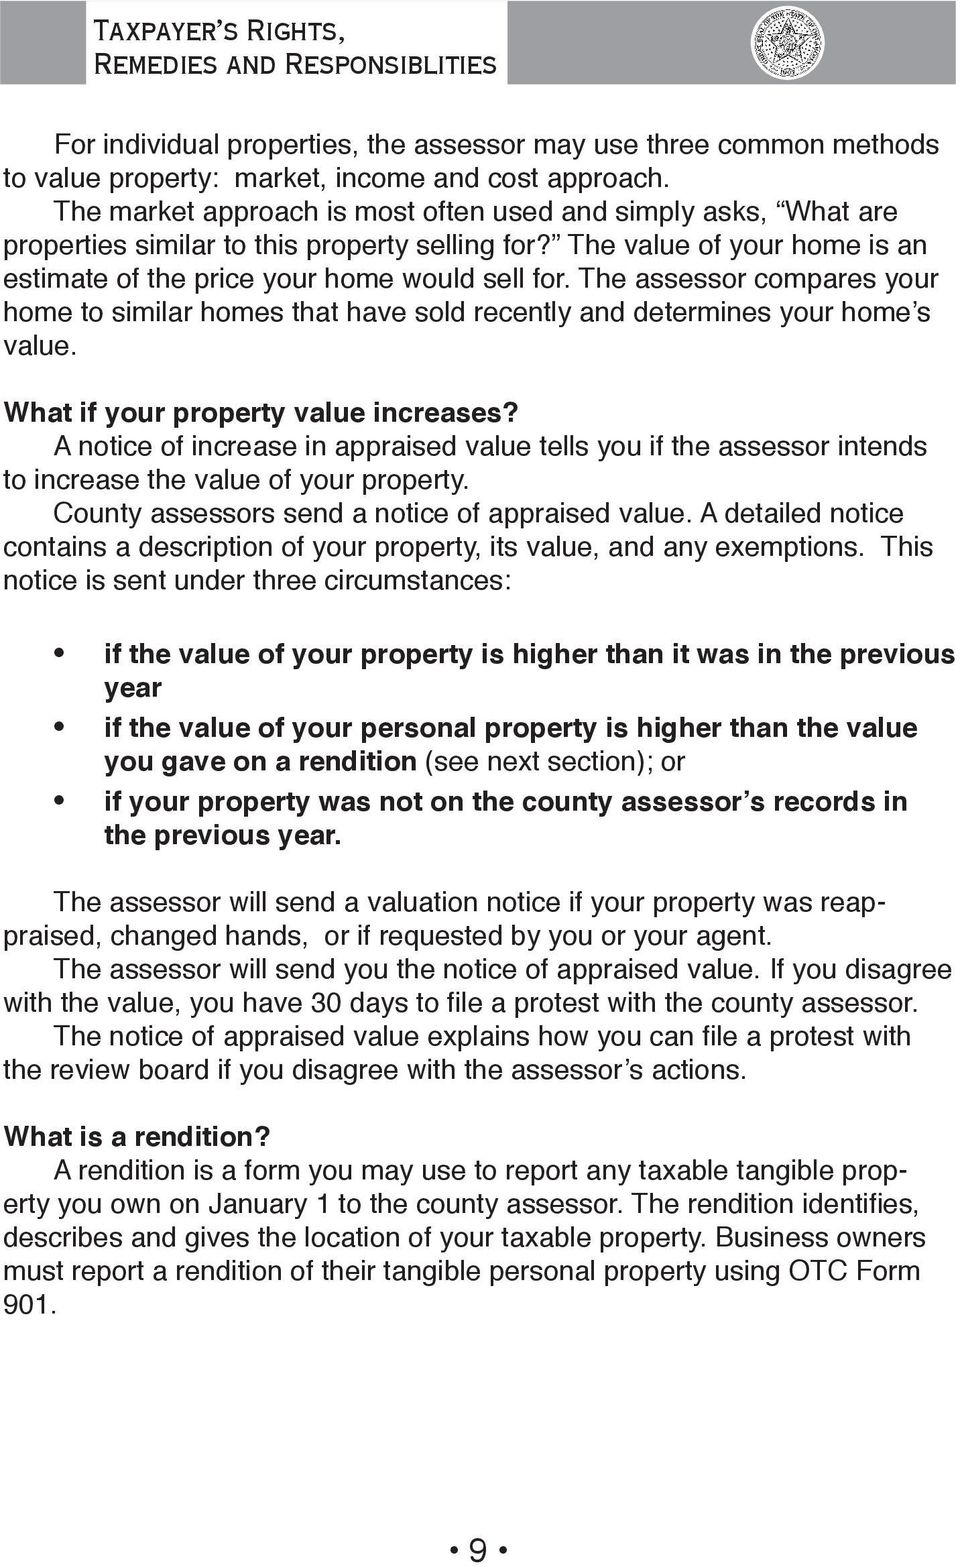 The assessor compares your home to similar homes that have sold recently and determines your home s value. What if your property value increases?